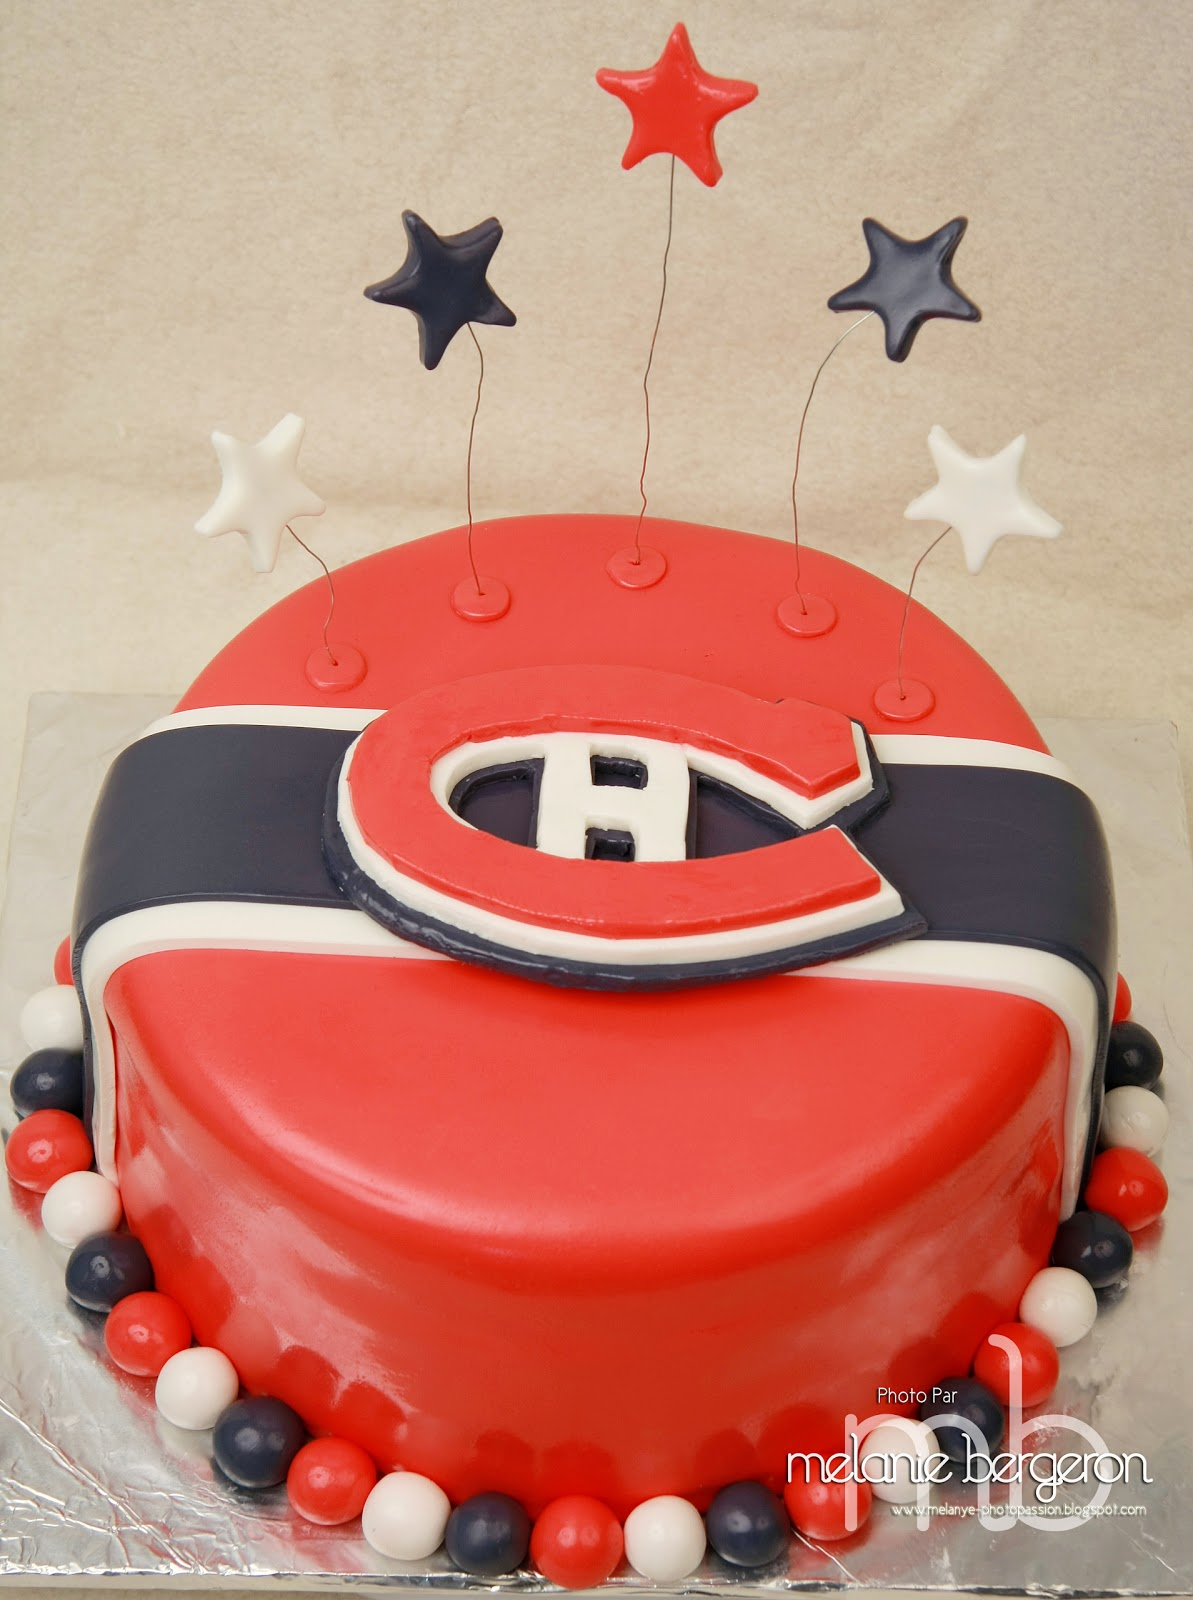 Gateau le canadien